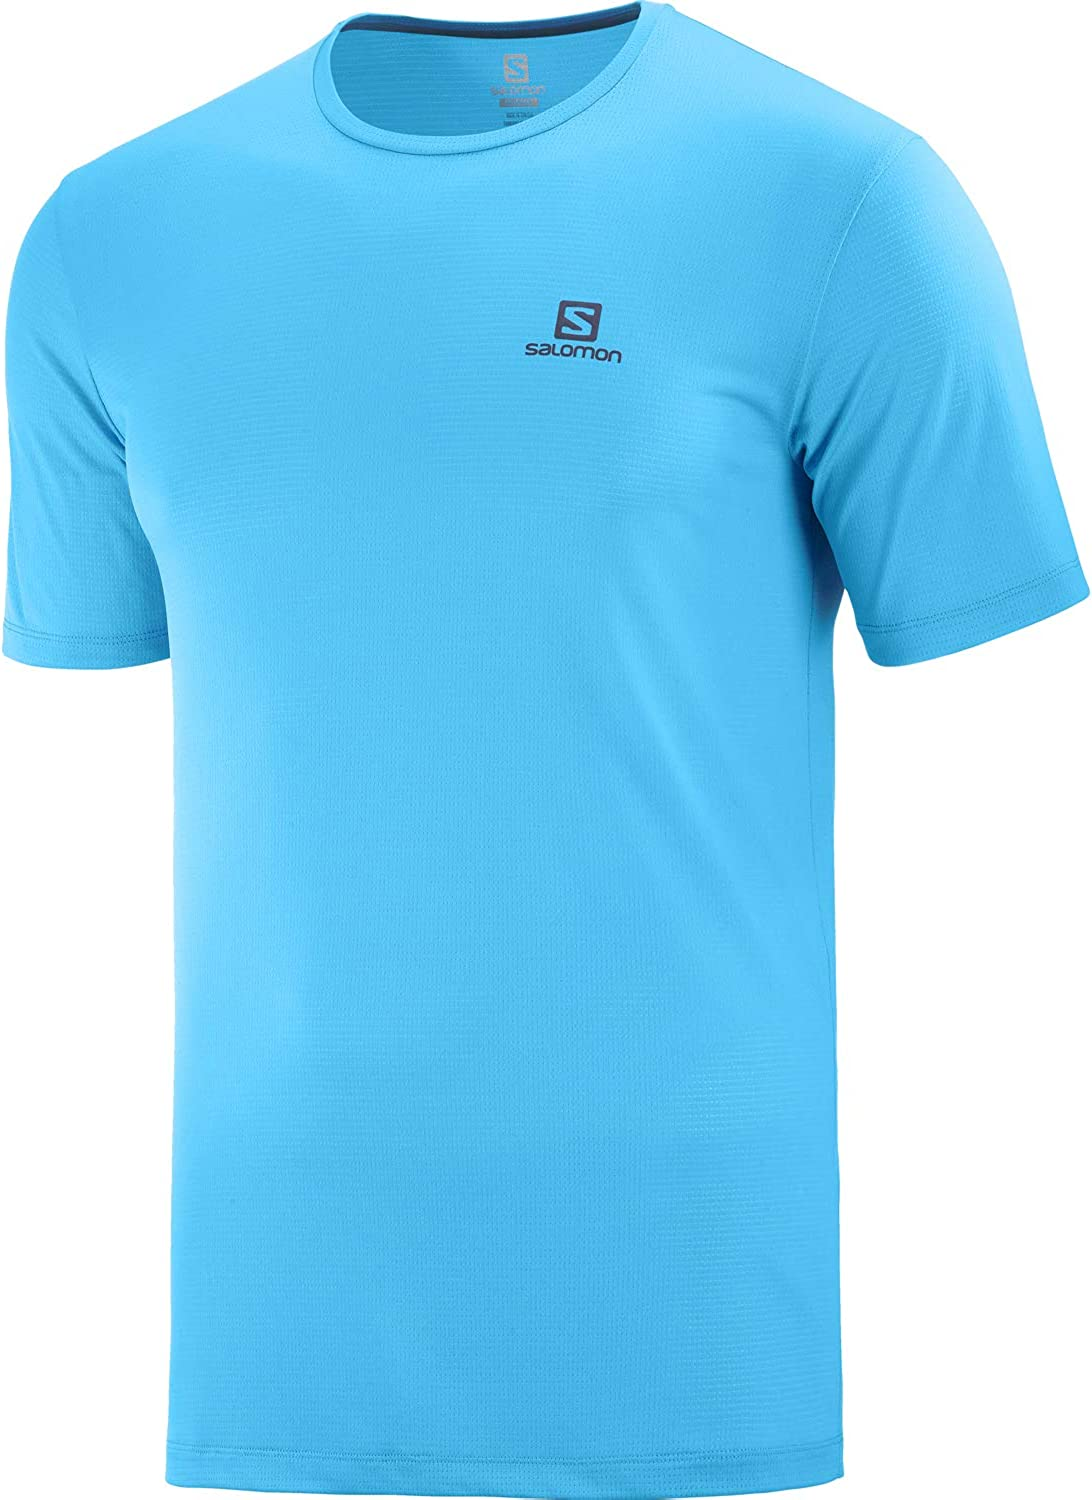 Salomon Men's Daily bargain sale Limited Special Price T-Shirt Short Sleeve